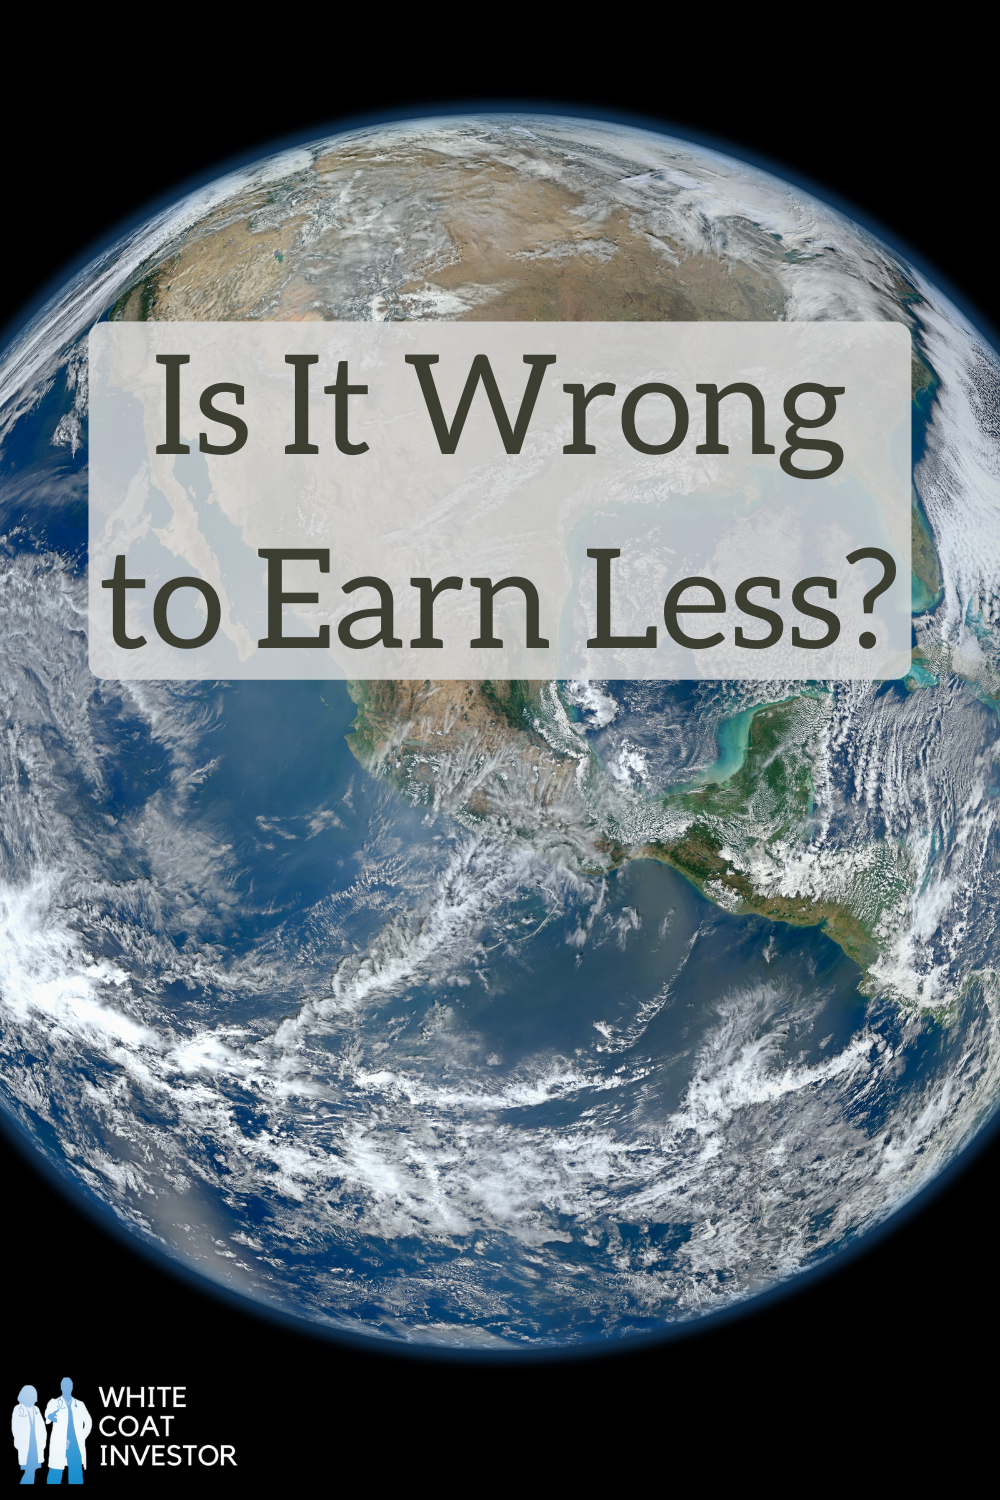 Is It Wrong to Earn Less? Is it morally wrong to not work & earn more if we are able? Lots to consider about the value of our time, money, talents, & bettering the world. #physician #financialindependence #earlyretirement #charitablegiving #wellness #burnout